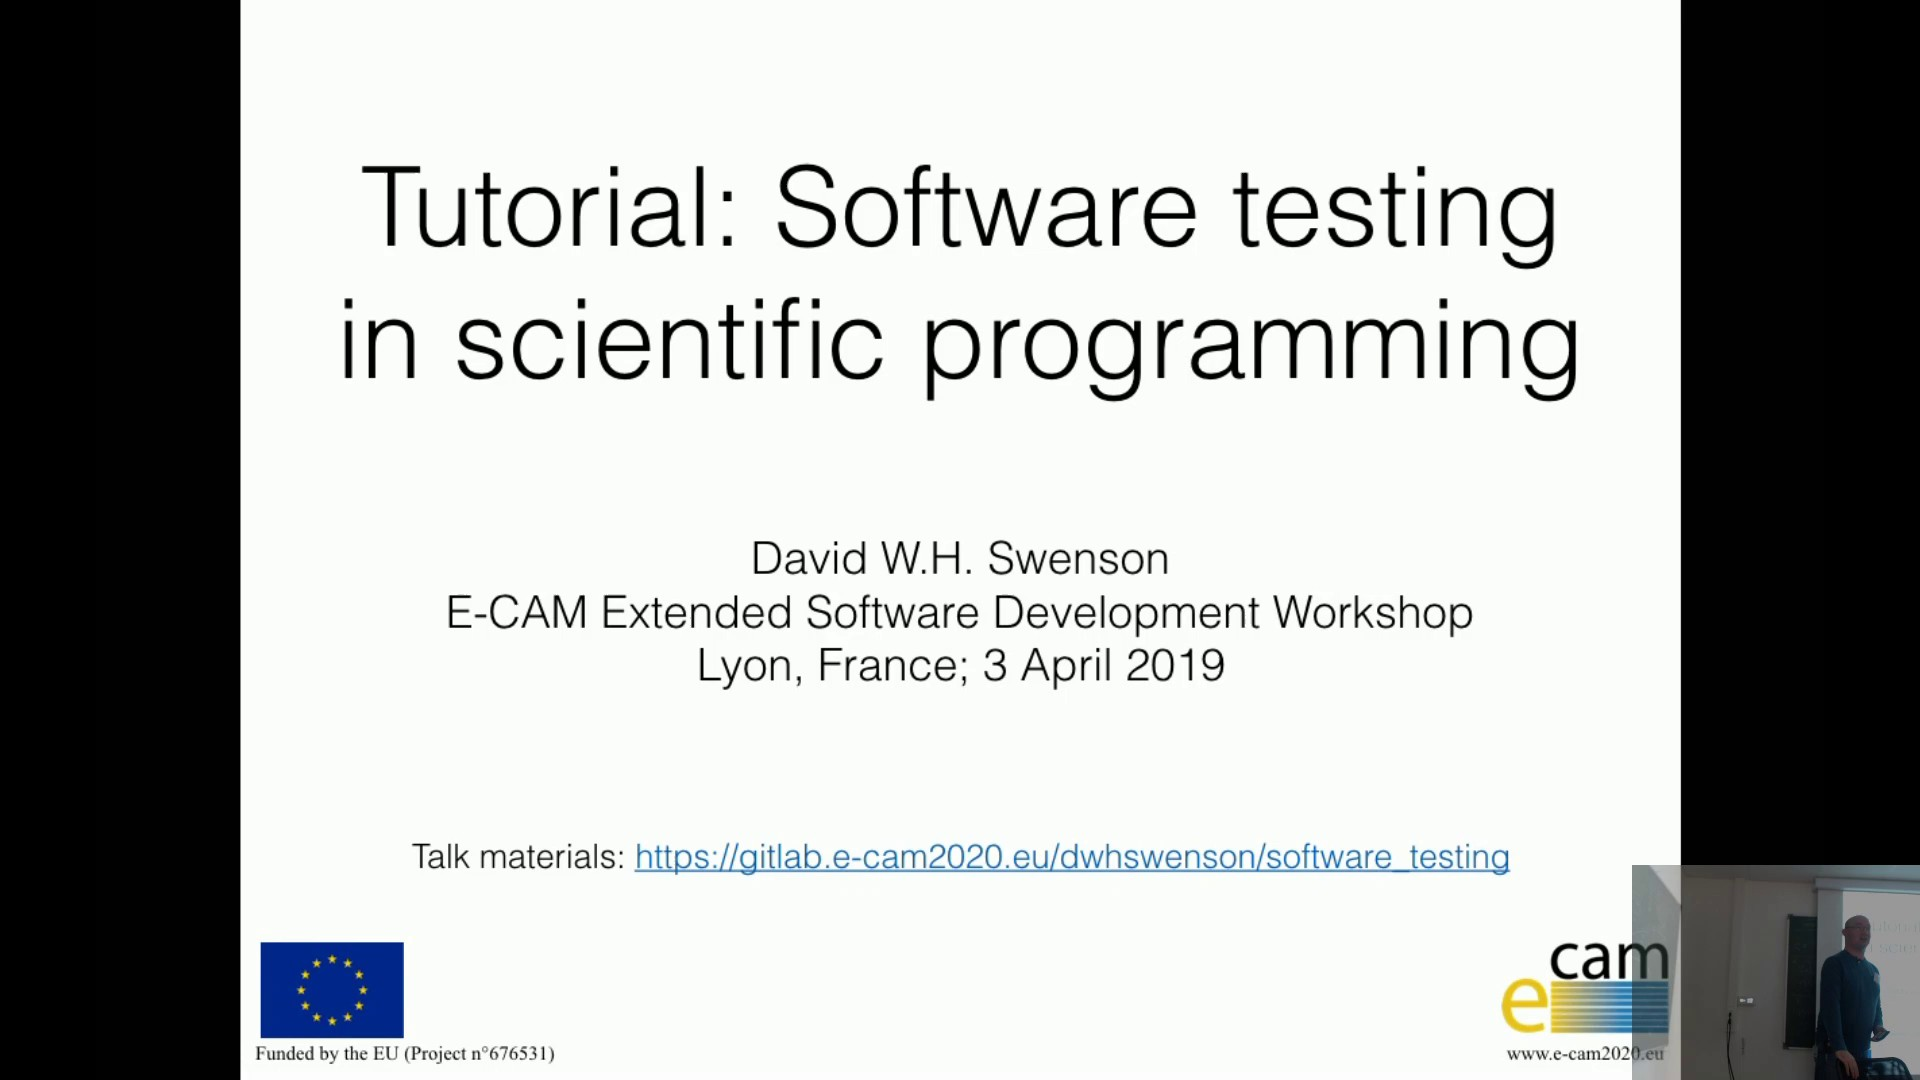 Thumbnail of Software Testing in scientific programming